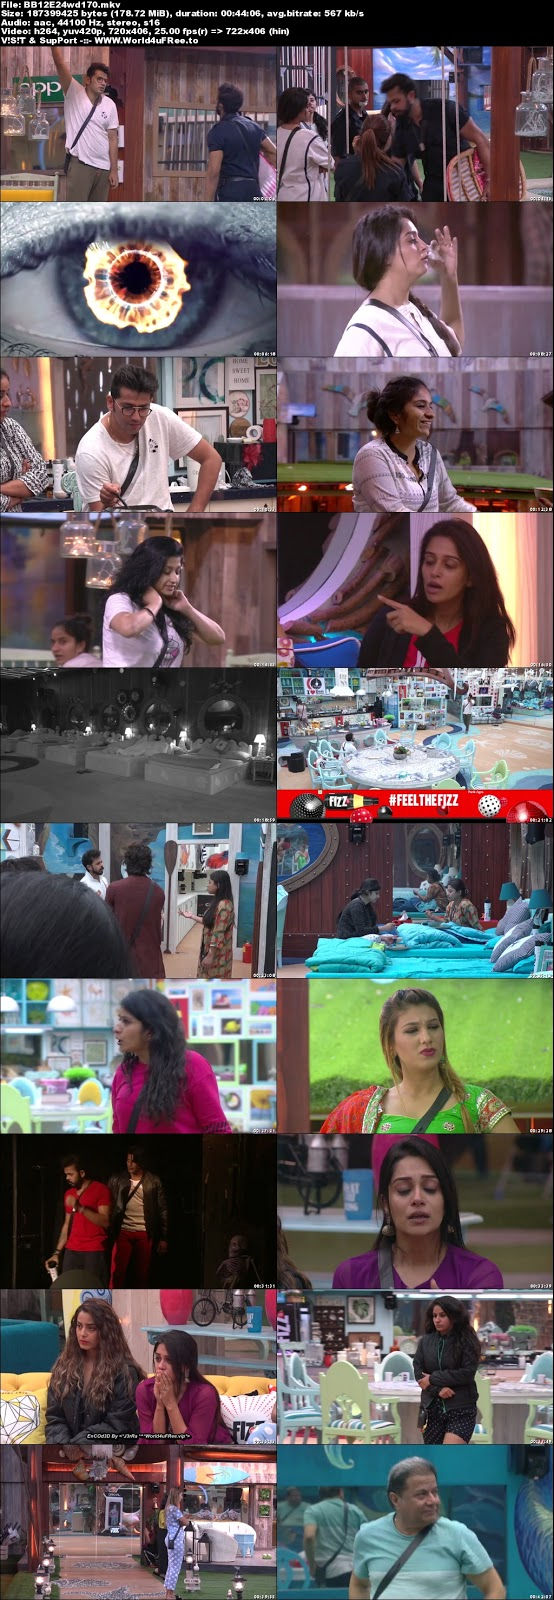 Bigg Boss 12 Episode 24 10 October 2018 WEBRip 480p Download world4ufree.vip tv show Episode 24 10 October 2018 world4ufree.vip 200mb 250mb 300mb compressed small size free download or watch online at world4ufree.vip